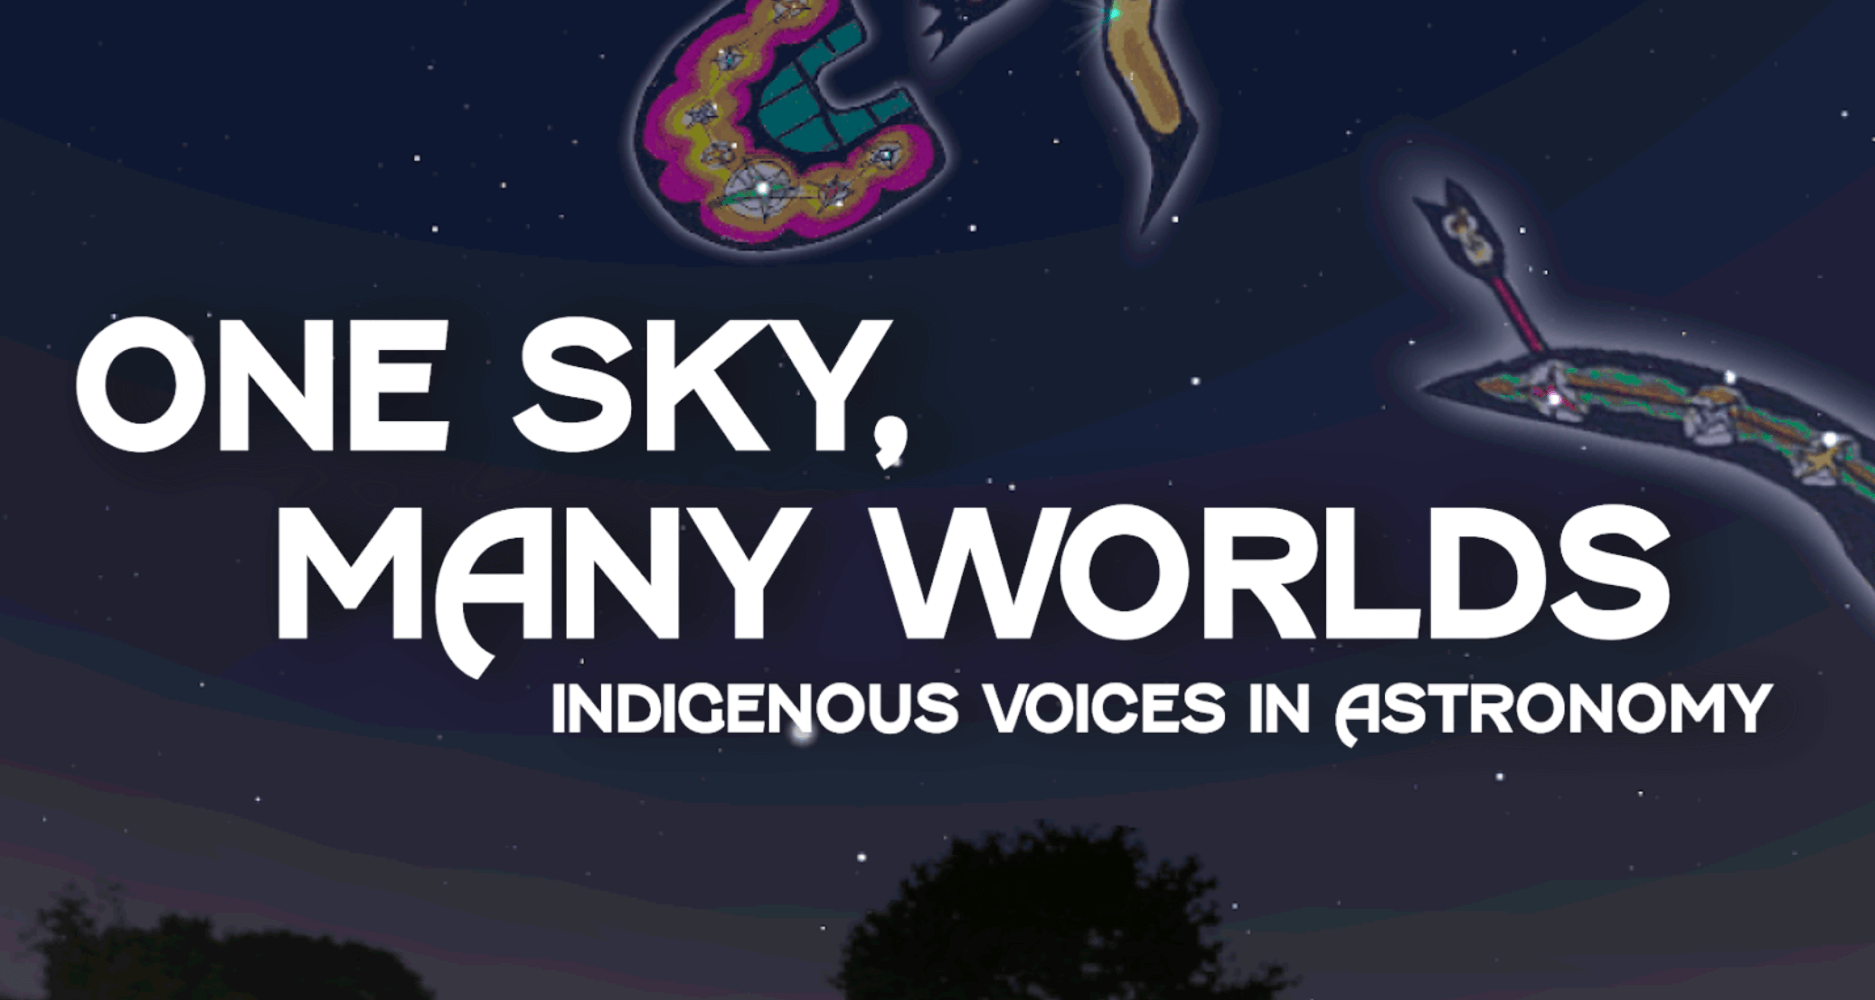 One Sky, Many Worlds: Indigenous Voices in Astronomy